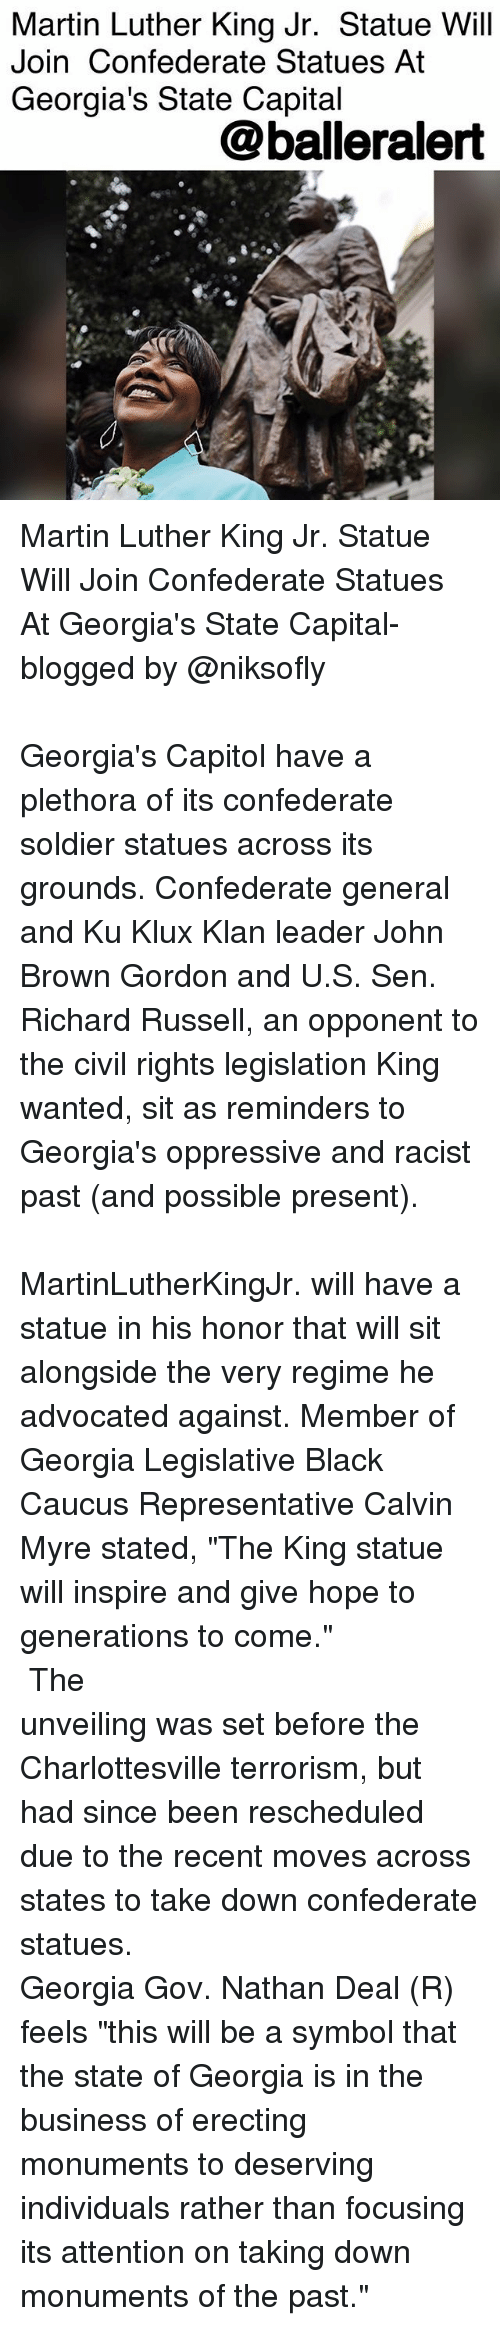 """Civility: Martin Luther King Jr. Statue Will  Join Confederate Statues At  Georgia's State Capital  @balleralert Martin Luther King Jr. Statue Will Join Confederate Statues At Georgia's State Capital- blogged by @niksofly ⠀⠀⠀⠀⠀⠀⠀⠀⠀⠀⠀⠀⠀⠀⠀⠀⠀⠀⠀⠀⠀⠀⠀⠀⠀⠀⠀⠀⠀⠀⠀⠀⠀⠀⠀⠀ Georgia's Capitol have a plethora of its confederate soldier statues across its grounds. Confederate general and Ku Klux Klan leader John Brown Gordon and U.S. Sen. Richard Russell, an opponent to the civil rights legislation King wanted, sit as reminders to Georgia's oppressive and racist past (and possible present). ⠀⠀⠀⠀⠀⠀⠀⠀⠀⠀⠀⠀⠀⠀⠀⠀⠀⠀⠀⠀⠀⠀⠀⠀⠀⠀⠀⠀⠀⠀⠀⠀⠀⠀⠀⠀ MartinLutherKingJr. will have a statue in his honor that will sit alongside the very regime he advocated against. Member of Georgia Legislative Black Caucus Representative Calvin Myre stated, """"The King statue will inspire and give hope to generations to come."""" ⠀⠀⠀⠀⠀⠀⠀⠀⠀⠀⠀⠀⠀⠀⠀⠀⠀⠀⠀⠀⠀⠀⠀⠀⠀⠀⠀⠀⠀⠀⠀⠀⠀⠀⠀⠀ The unveiling was set before the Charlottesville terrorism, but had since been rescheduled due to the recent moves across states to take down confederate statues. ⠀⠀⠀⠀⠀⠀⠀⠀⠀⠀⠀⠀⠀⠀⠀⠀⠀⠀⠀⠀⠀⠀⠀⠀⠀⠀⠀⠀⠀⠀⠀⠀⠀⠀⠀⠀ Georgia Gov. Nathan Deal (R) feels """"this will be a symbol that the state of Georgia is in the business of erecting monuments to deserving individuals rather than focusing its attention on taking down monuments of the past."""""""